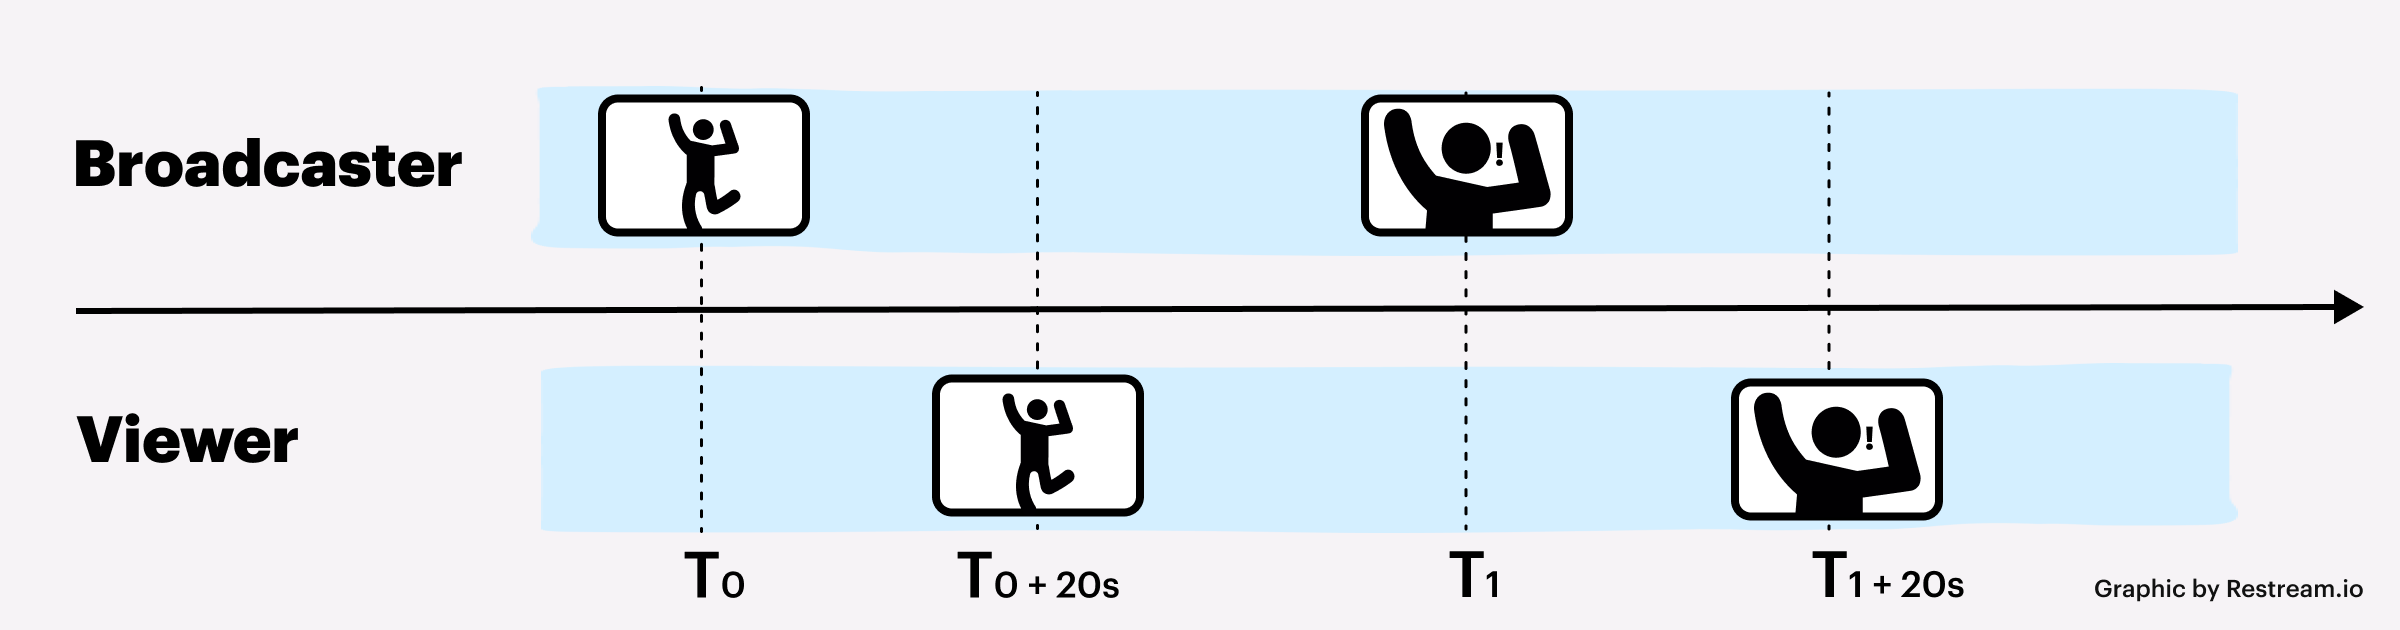 Illustration of low latency for broadcaster and viewer